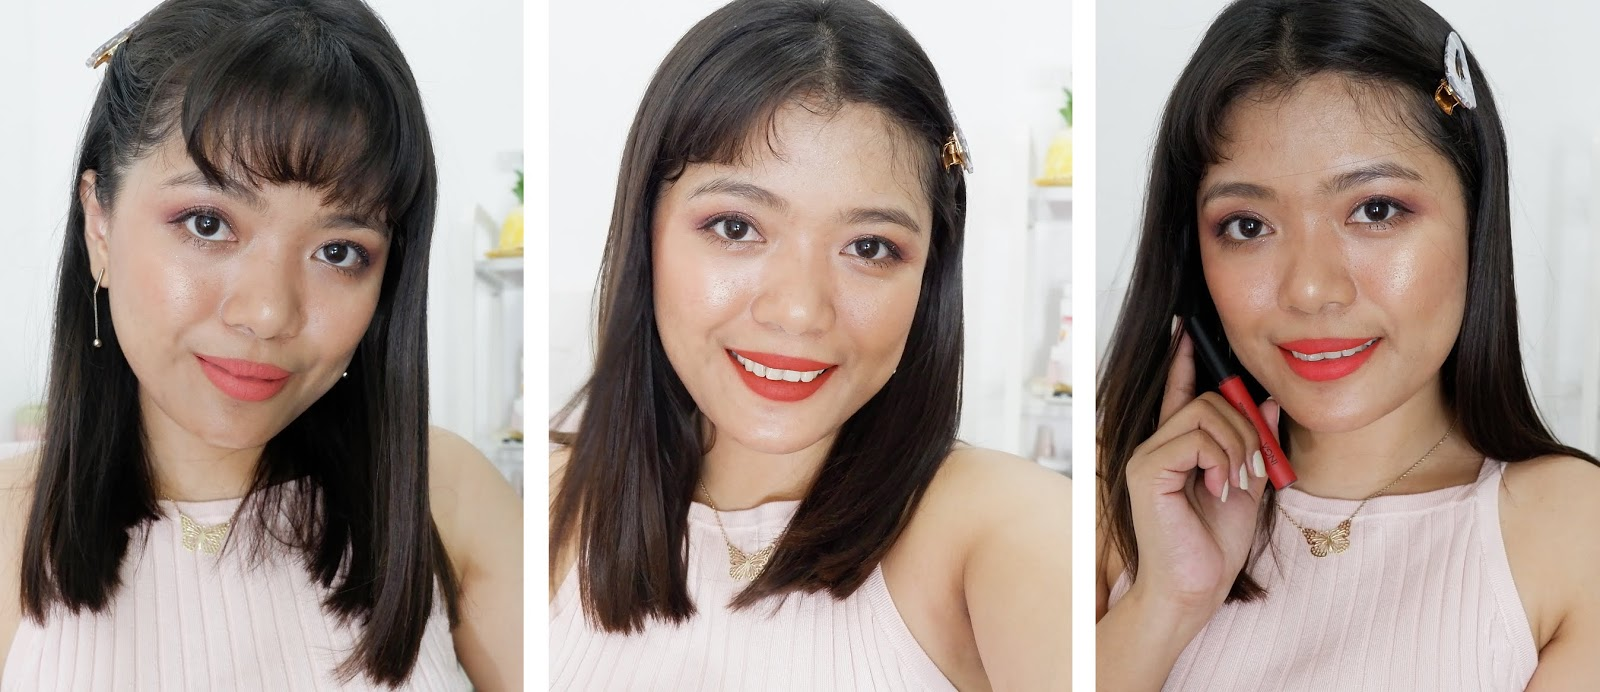 HERE'S WHAT TO EXPECT FROM INGA FLAT LIQUID LIPSTICK (SWATCHES & REVIEW)